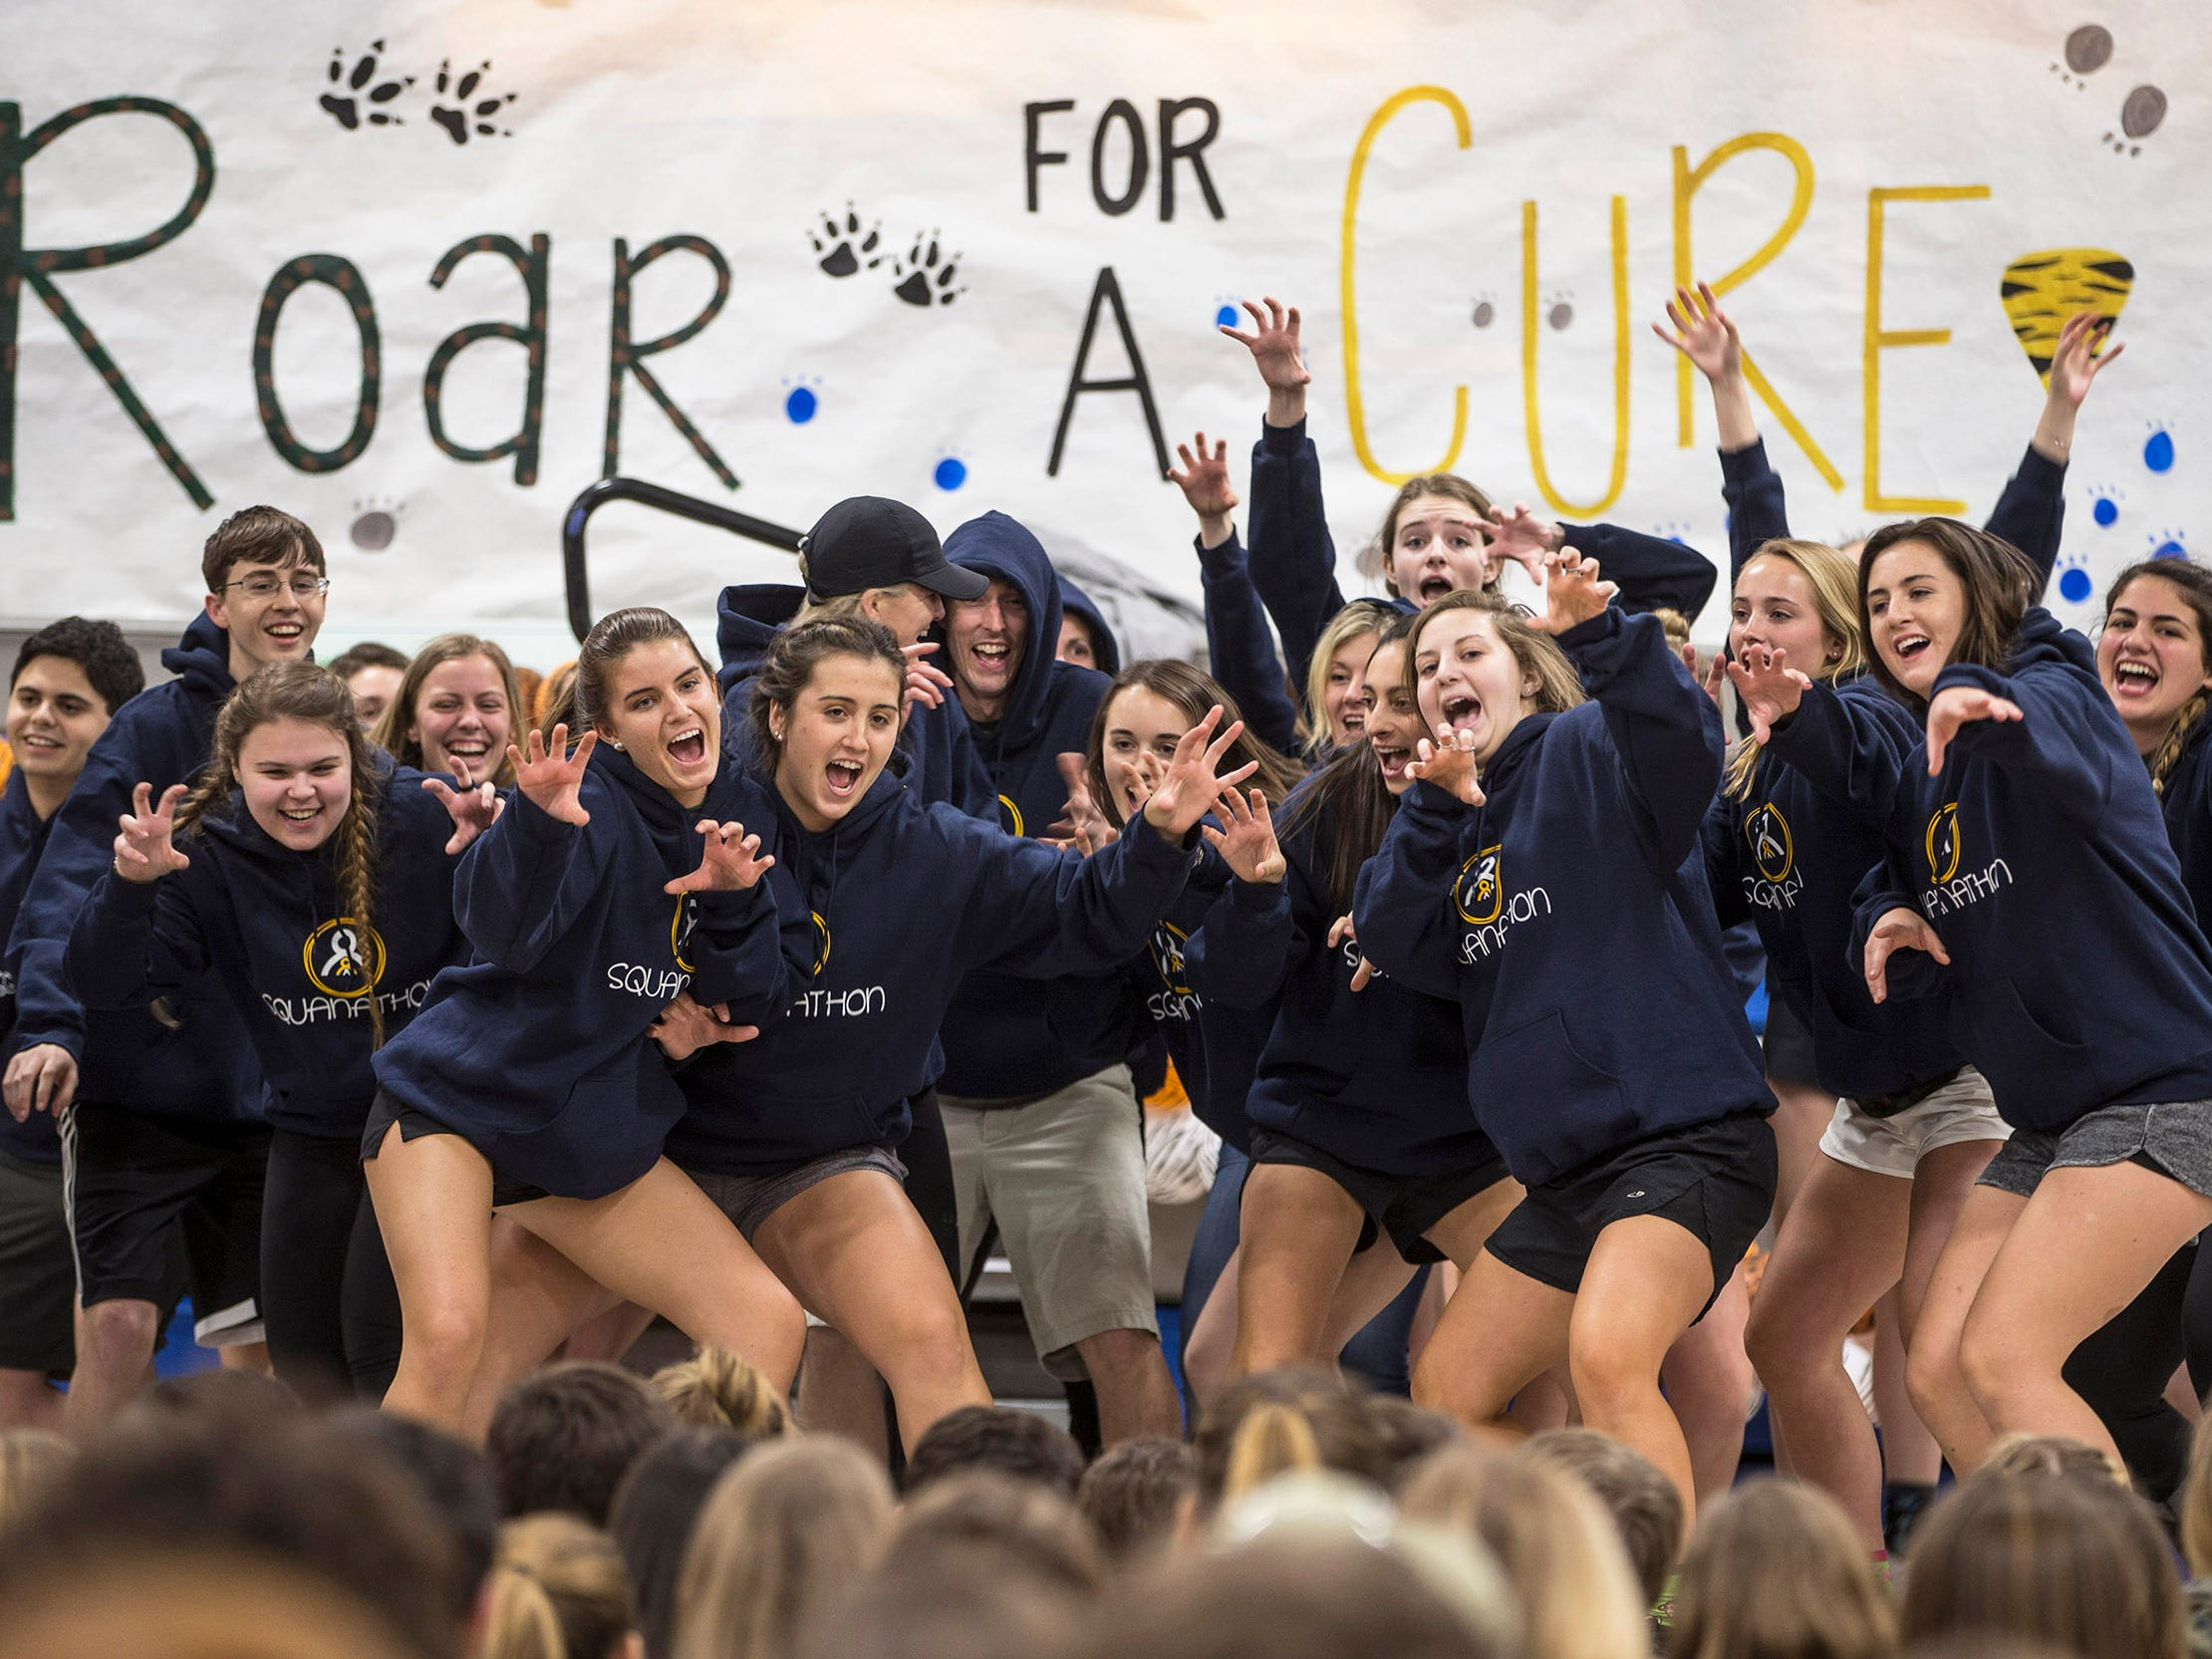 Squanathon is a 12-hour overnight dance-a-thon for students of Manasquan High School that annually raises more than $100,000 for pediatric cancer. The total amount raised this year is $142,570. Students dance during the event. Manasquan, NJ on Saturday, March17, 2018